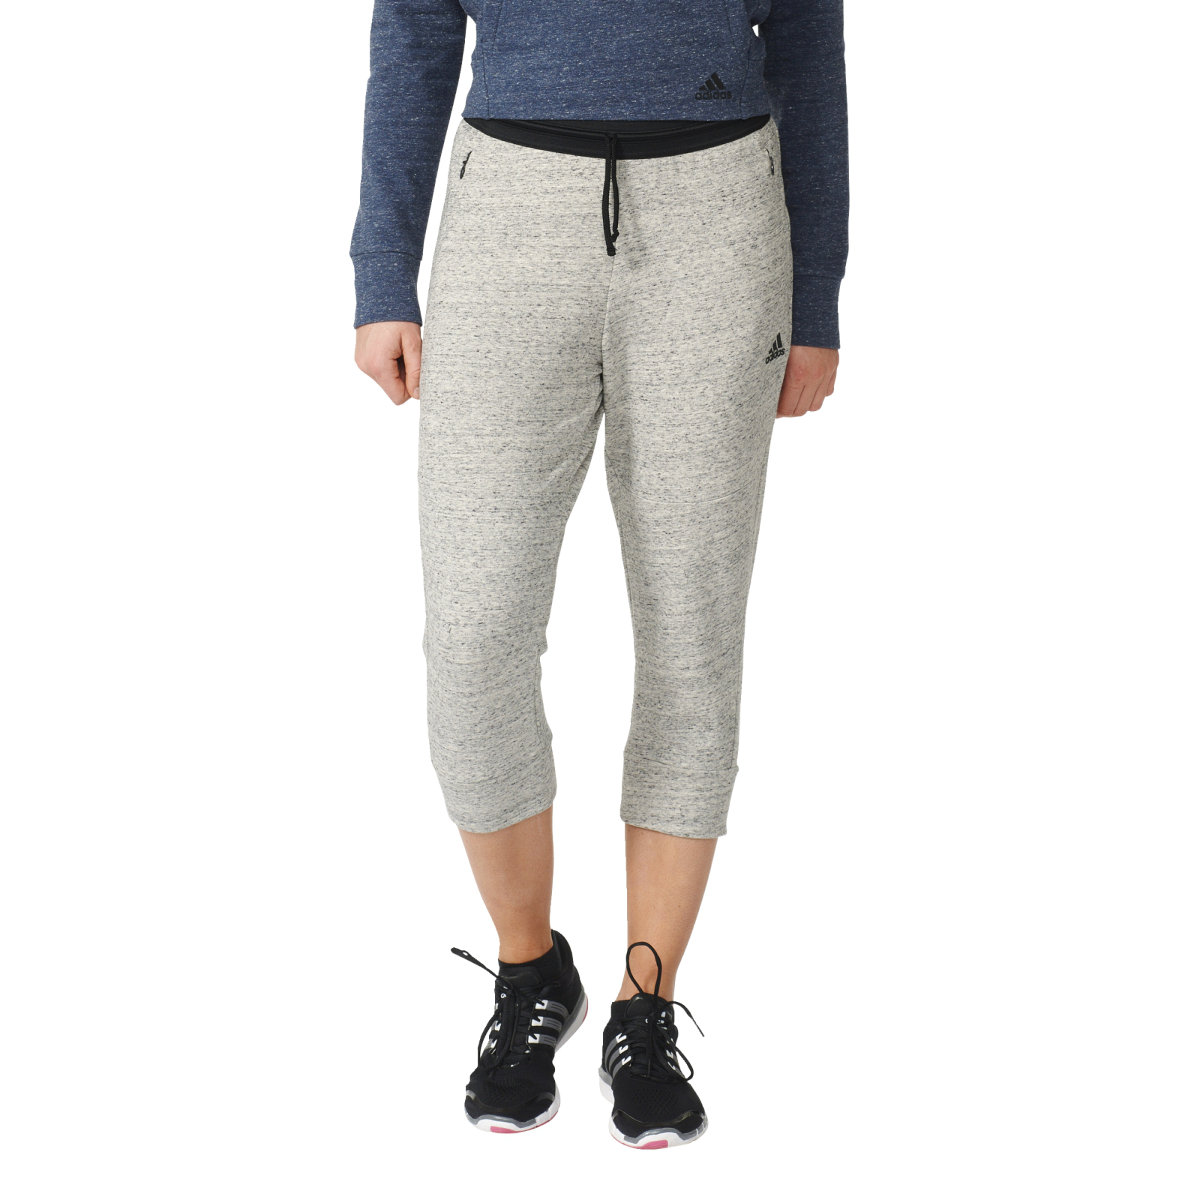 Adidas Womens Cotton Fleece 34 Pants (AW16)   Running Trousers